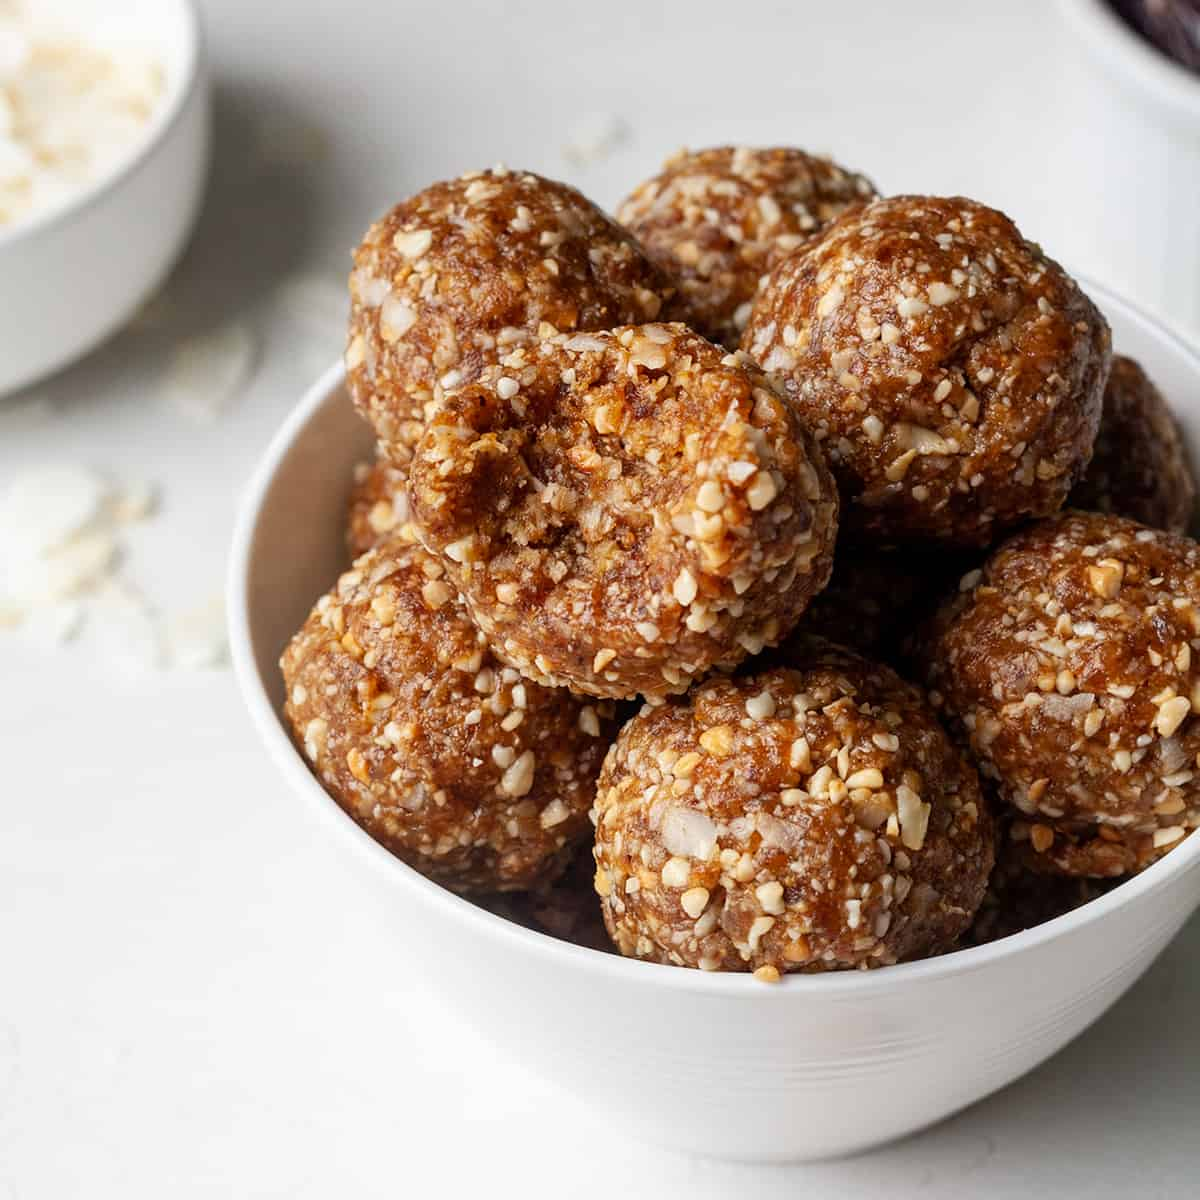 a bowl of coconut date balls, the top one has a bite taken out of it